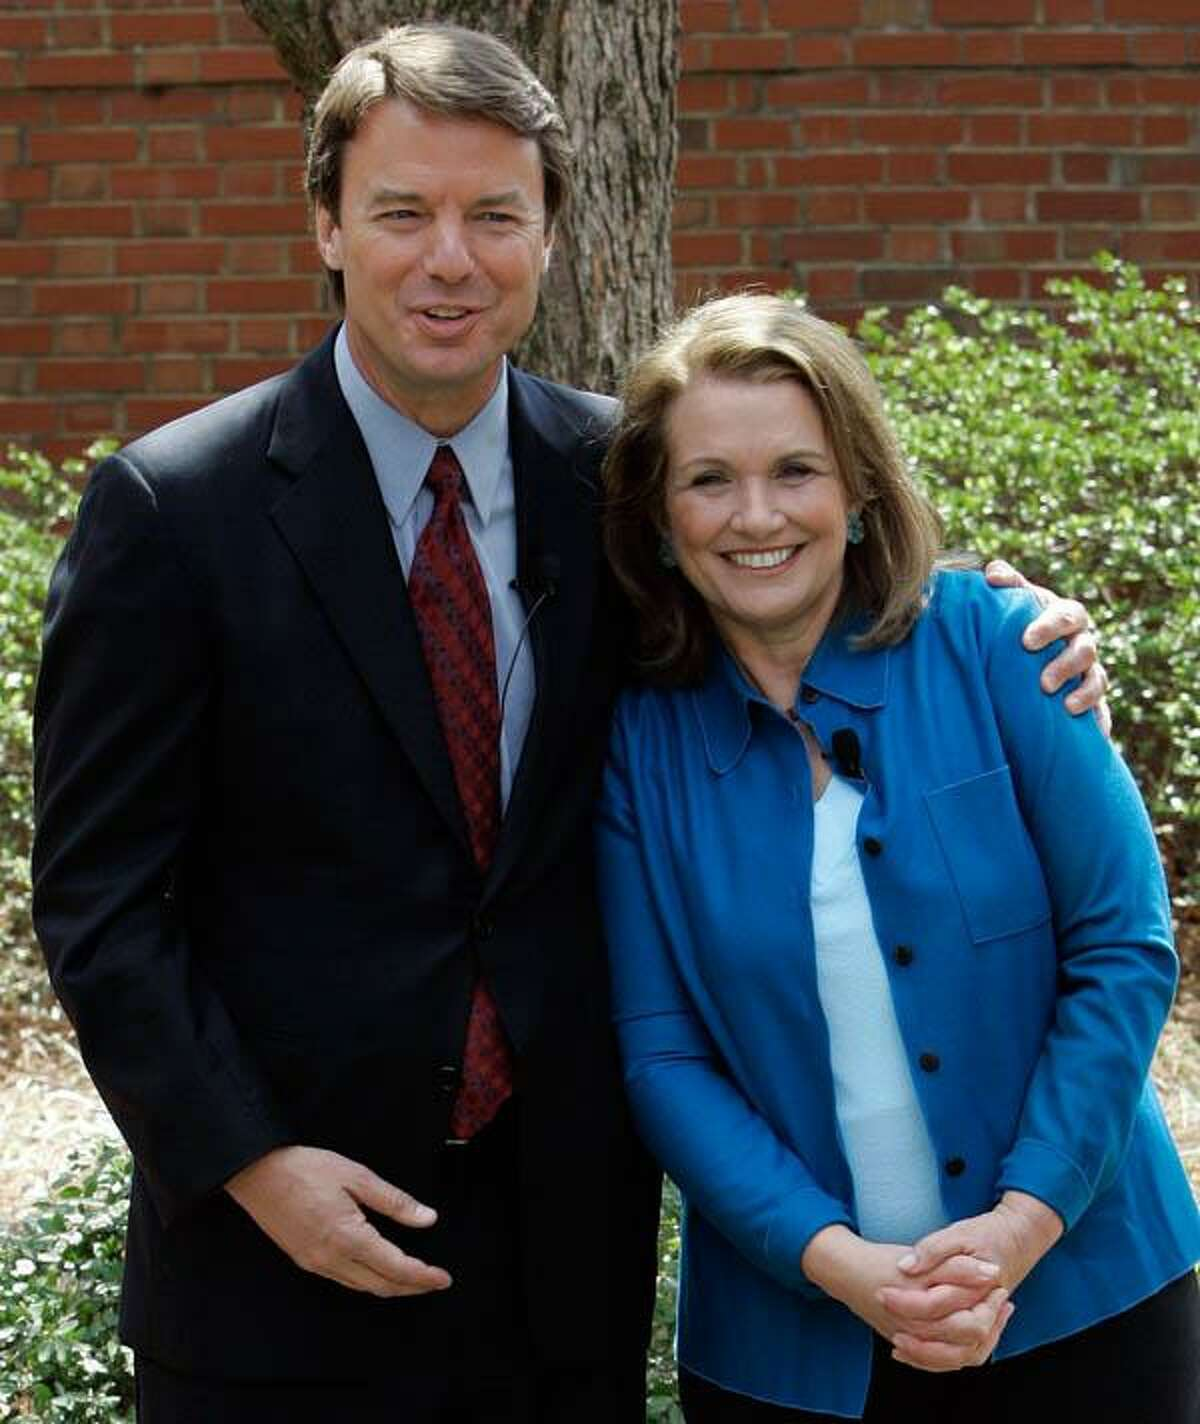 FILE - This March 22, 2007, file photo shows two-time presidential candidate John Edwards and his late wife, Elizabeth, during a news conference in Chapel Hill, N.C. Associated Press